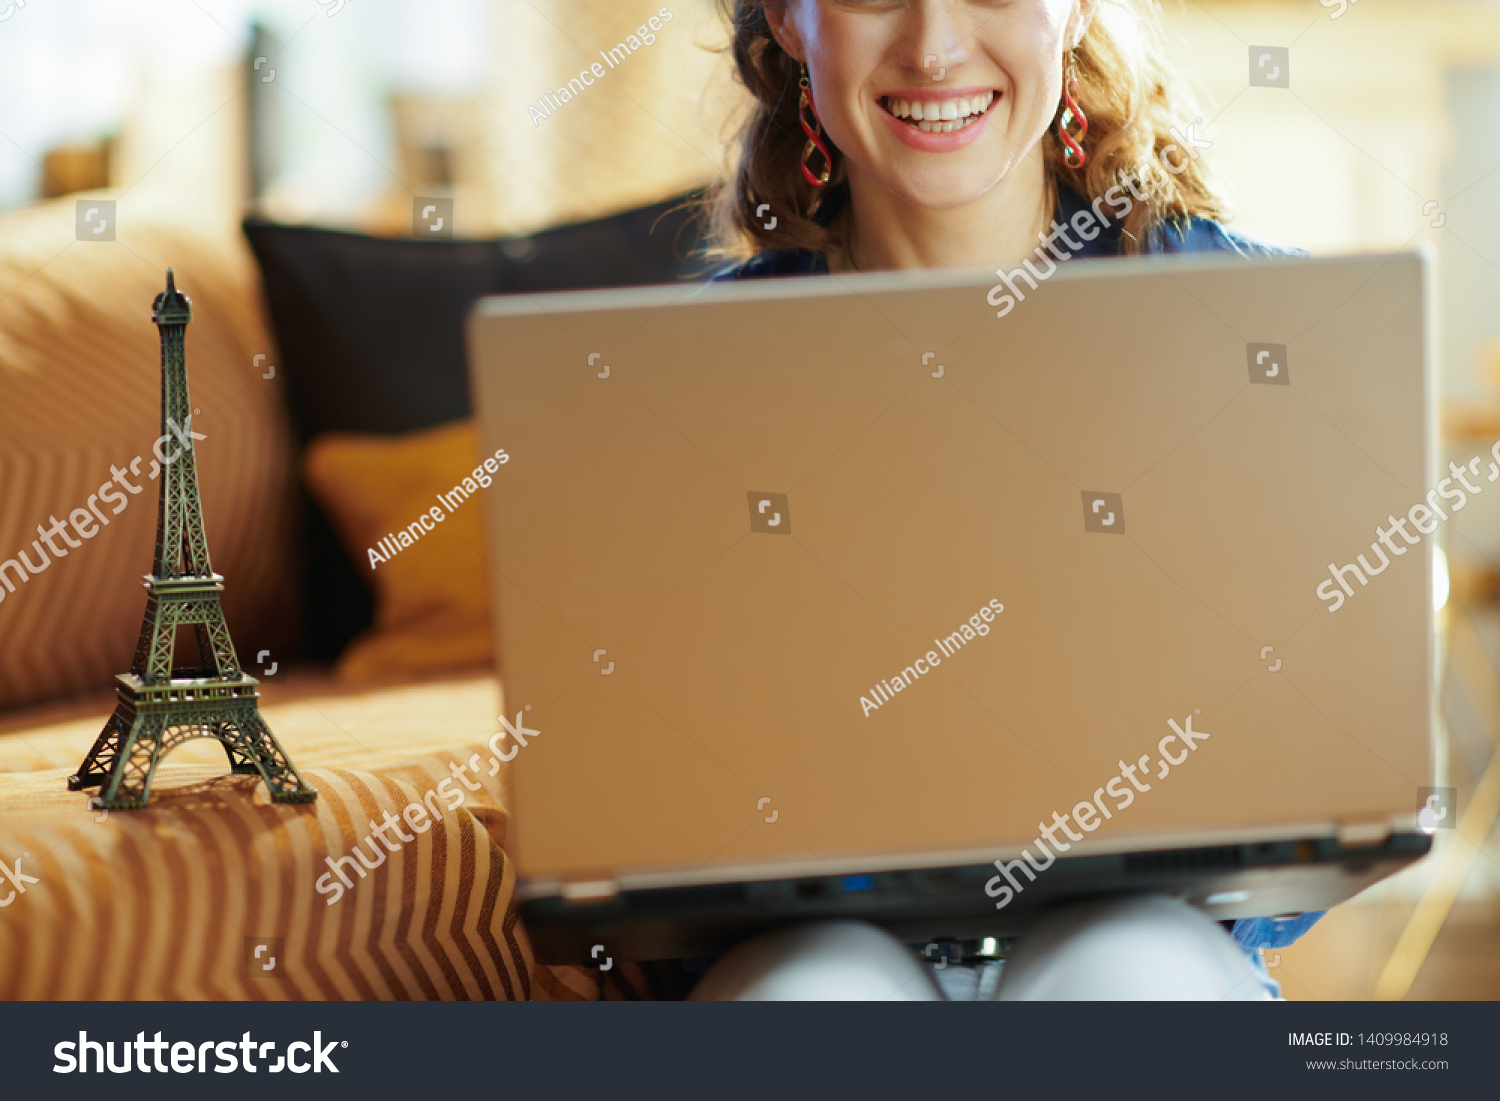 Closeup on happy stylish woman with a souvenir of the eiffel tower using laptop at modern home in sunny summer day. A fake website is made for illustrative purposes. #1409984918